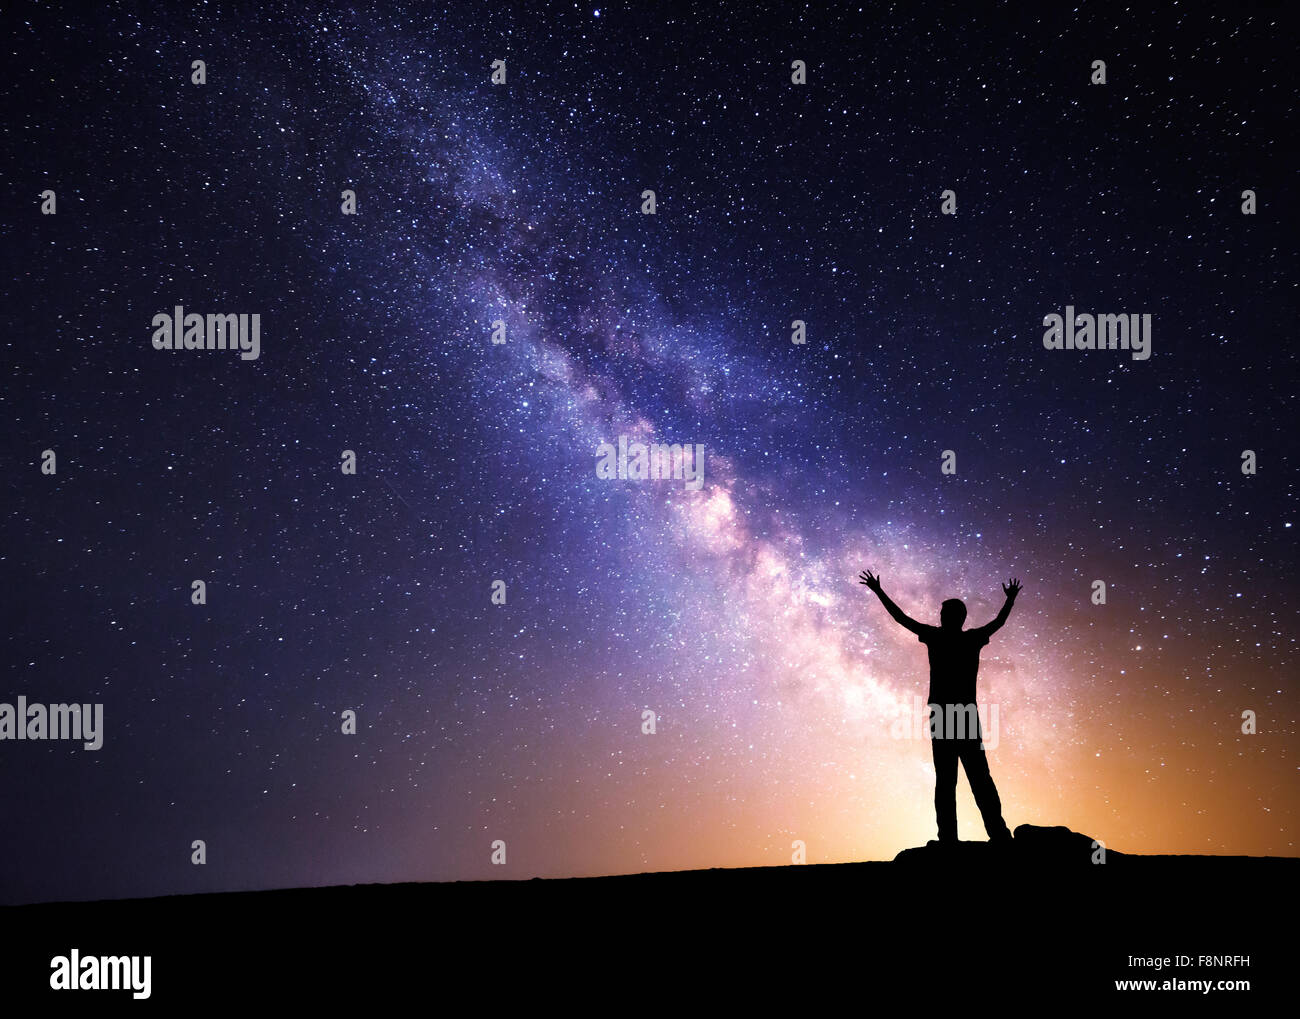 Milky Way. Night sky with stars and silhouette of a man with raised-up arms - Stock Image